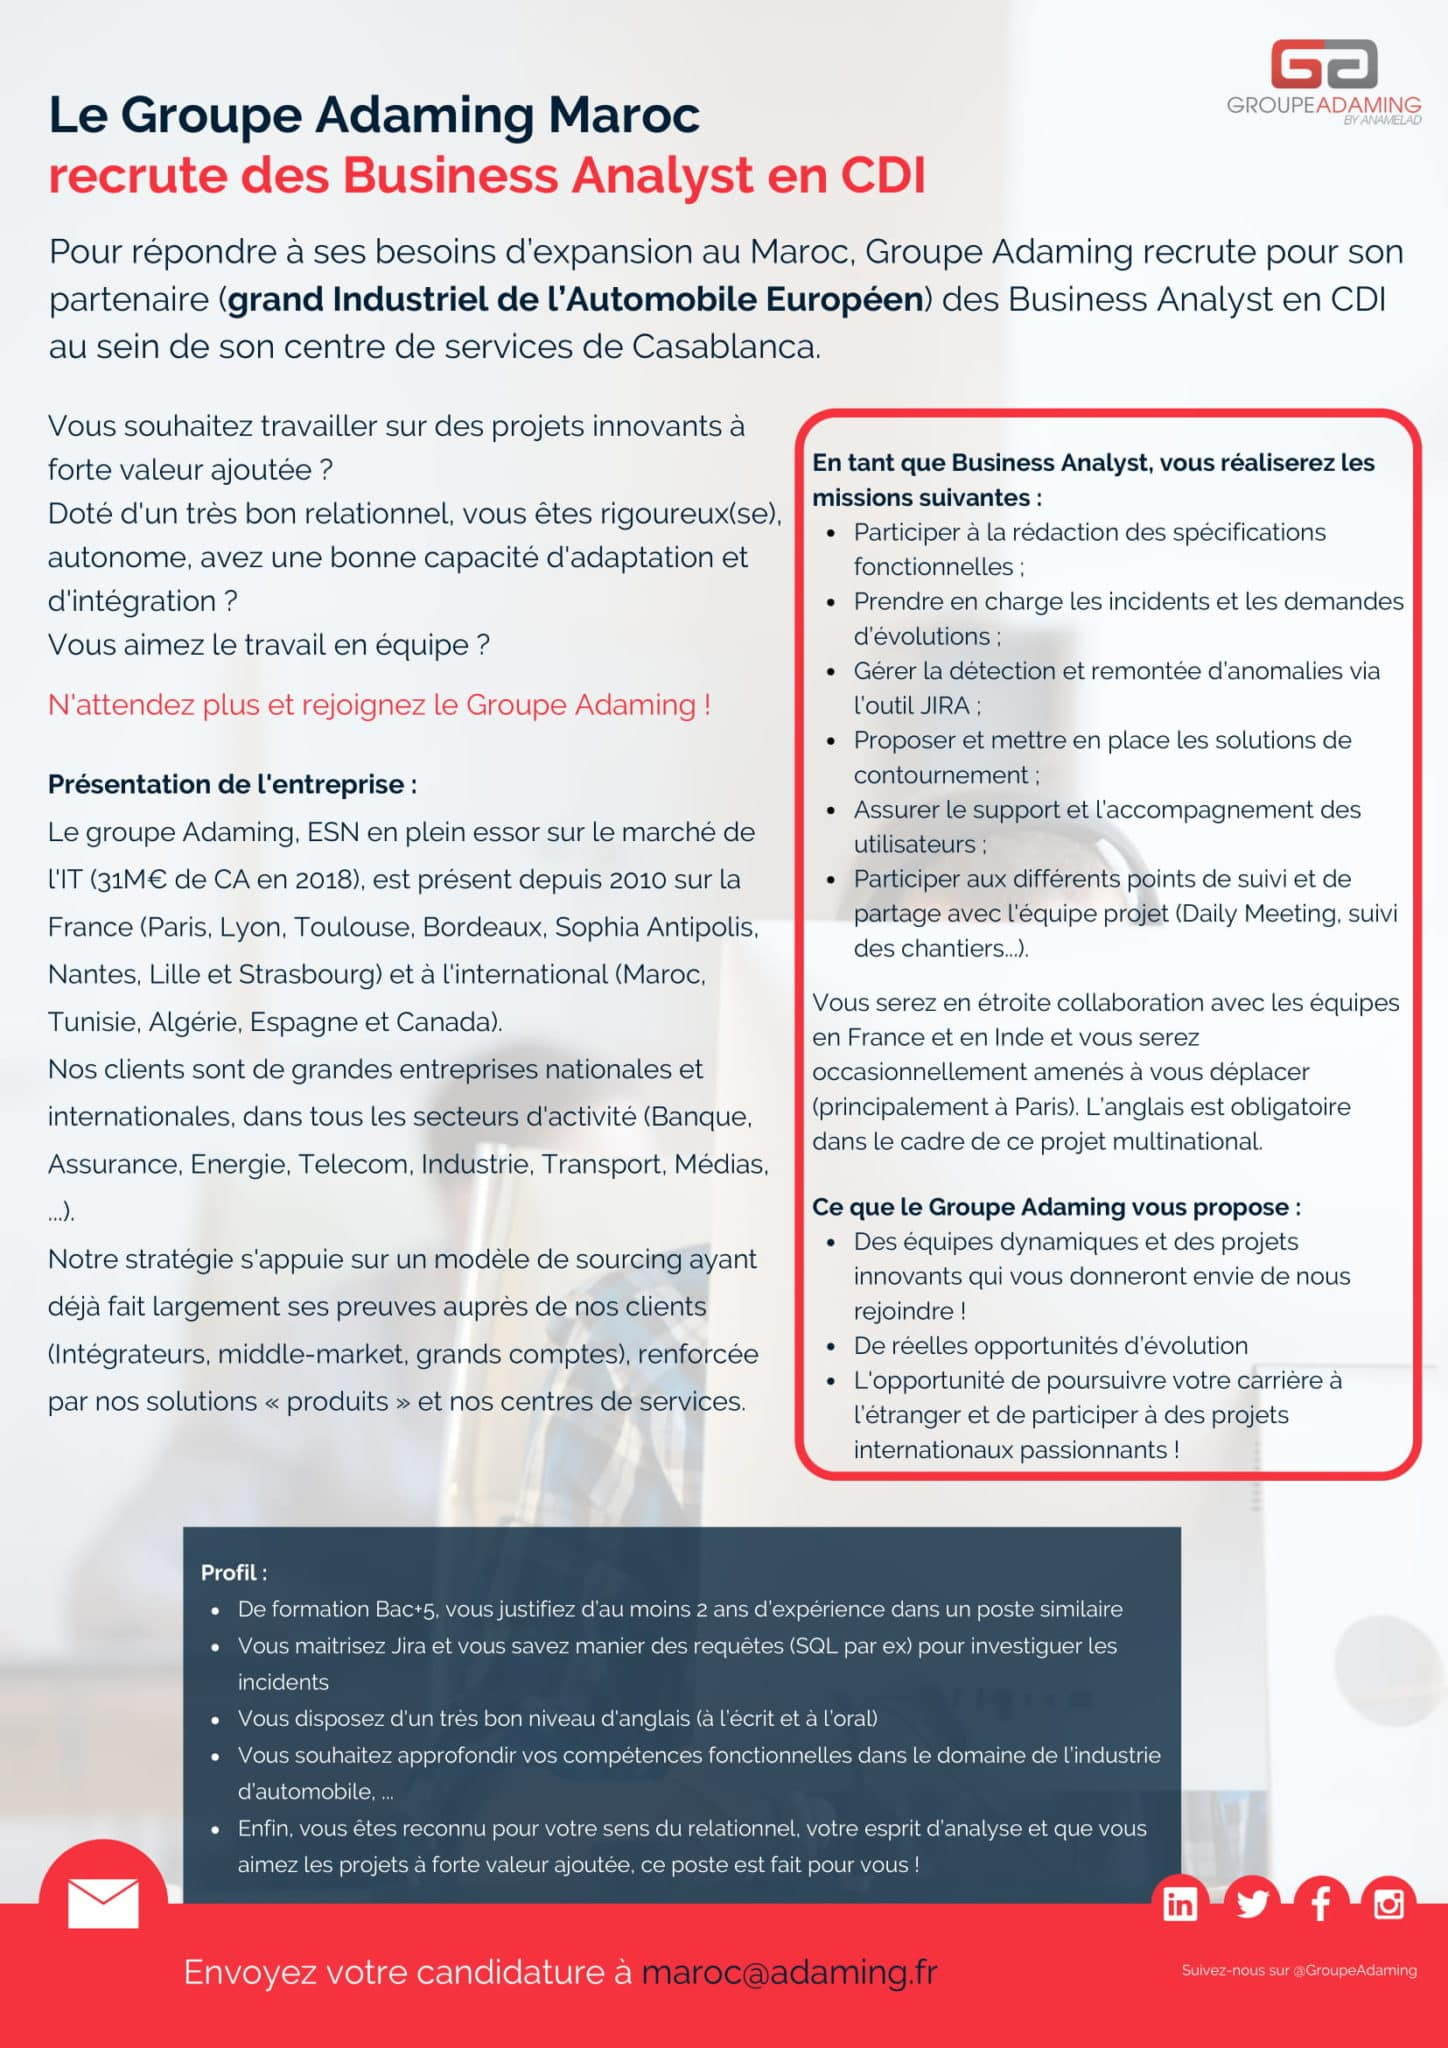 Groupe Adaming recrute des Business Analysts